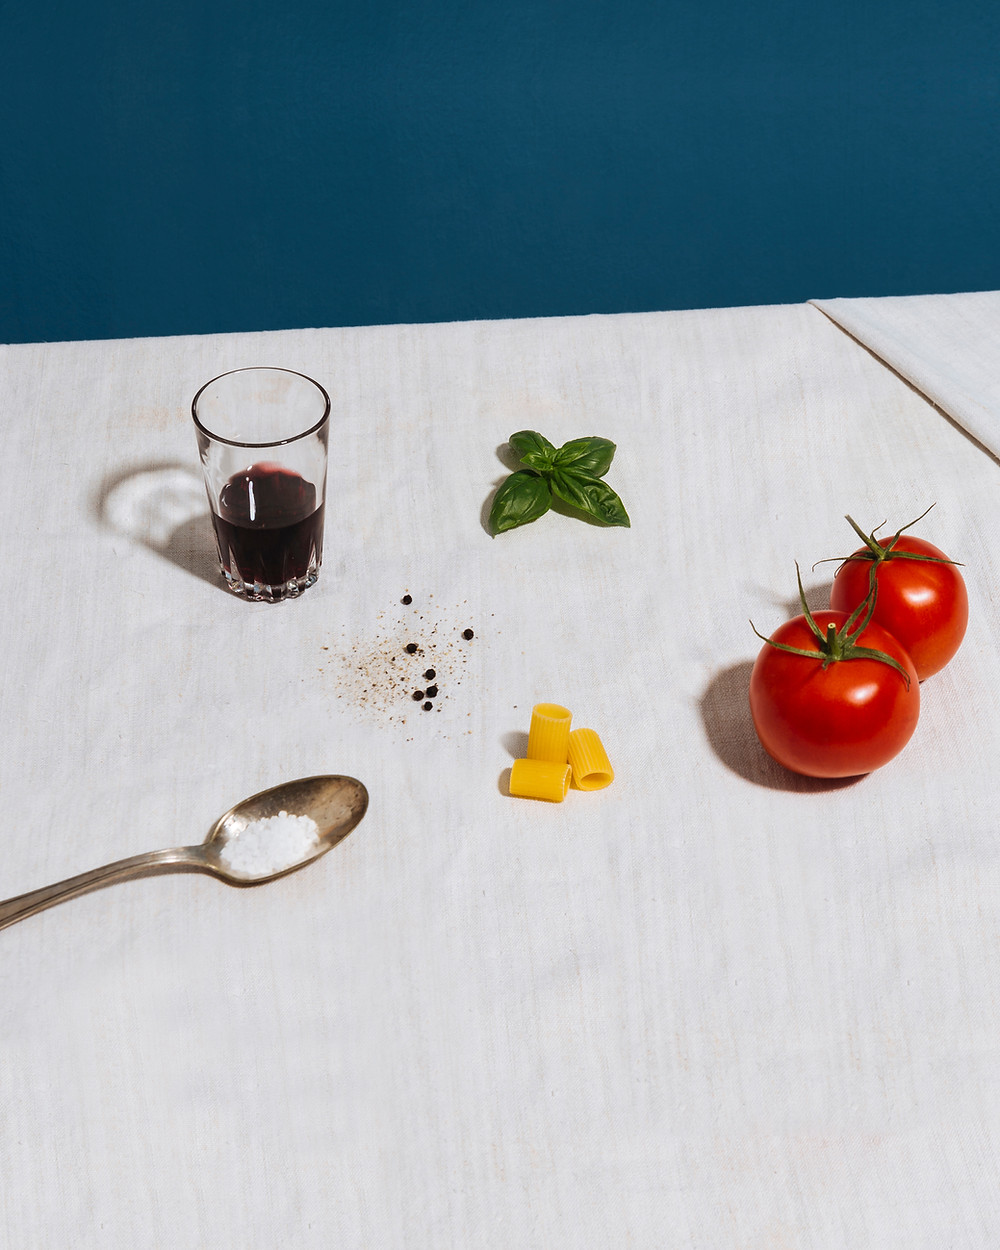 Glass of wine, basil leaves, tomatoes, dry pasta and some salt grains on a white tablecloth